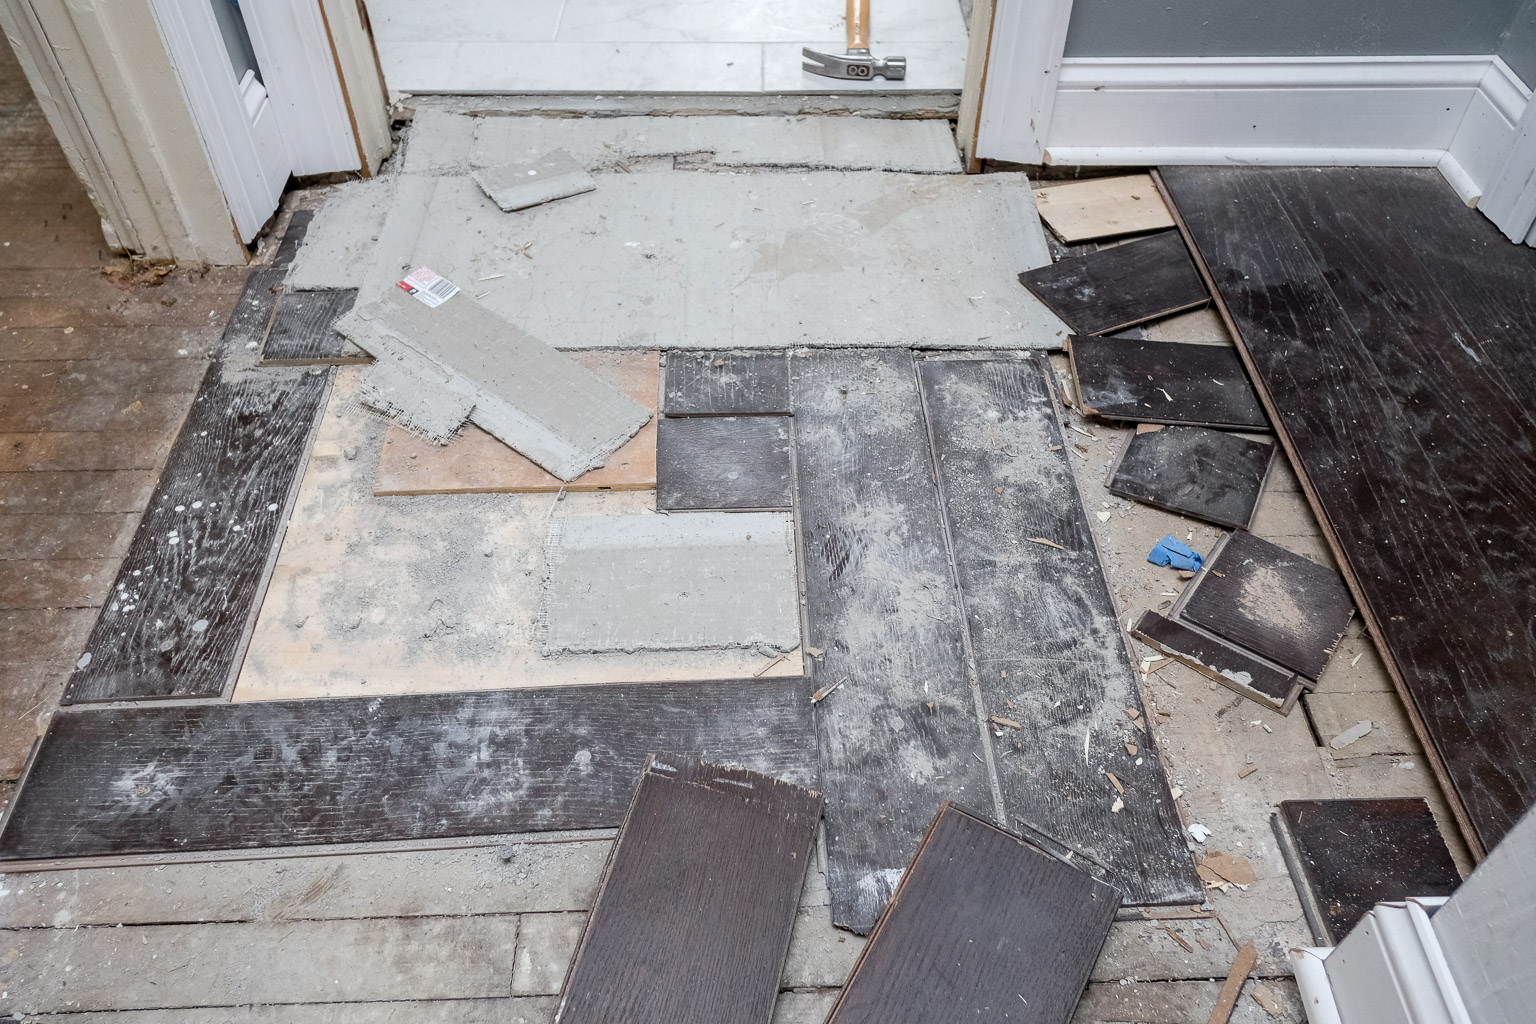 Rather than install a proper underlayment, thievery and incompetence led to the initial contractor using wall board and pieces of the new hardwood as an underlayment. There was such a pronounced change in elevation in this part of the floor, it felt like you walked onto a pitcher's mound.